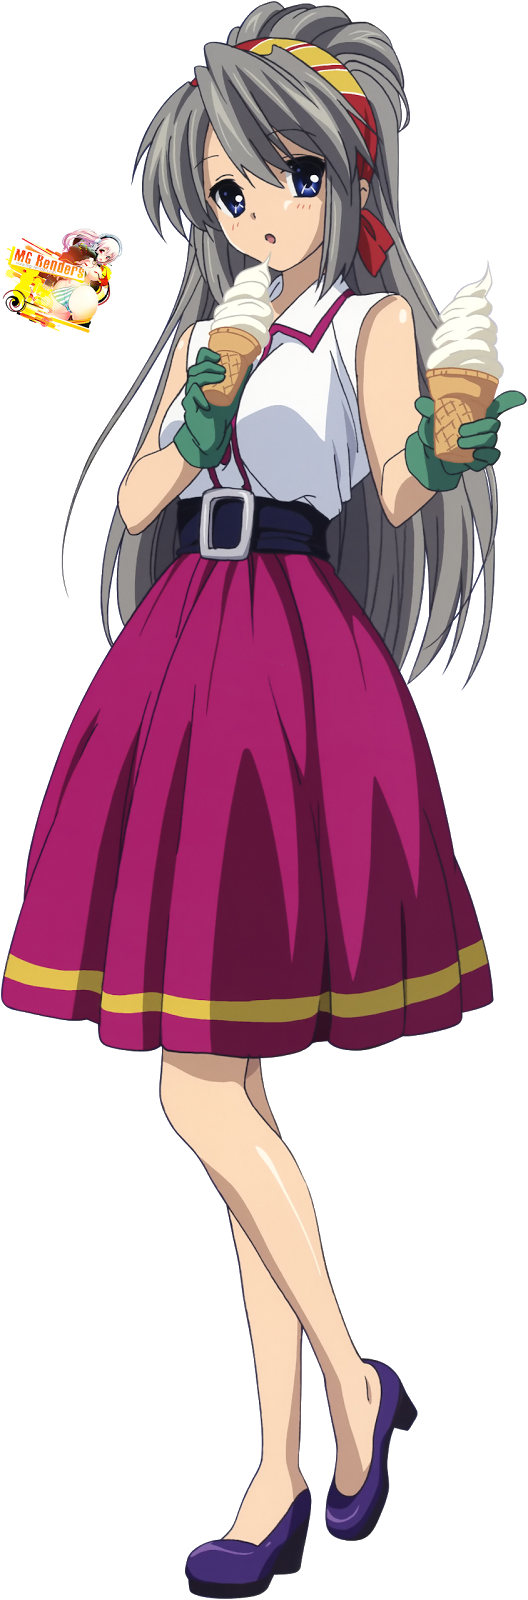 Tags: Anime, Render,  Clannad,  Sakagami Tomoyo, PNG, Image, Picture